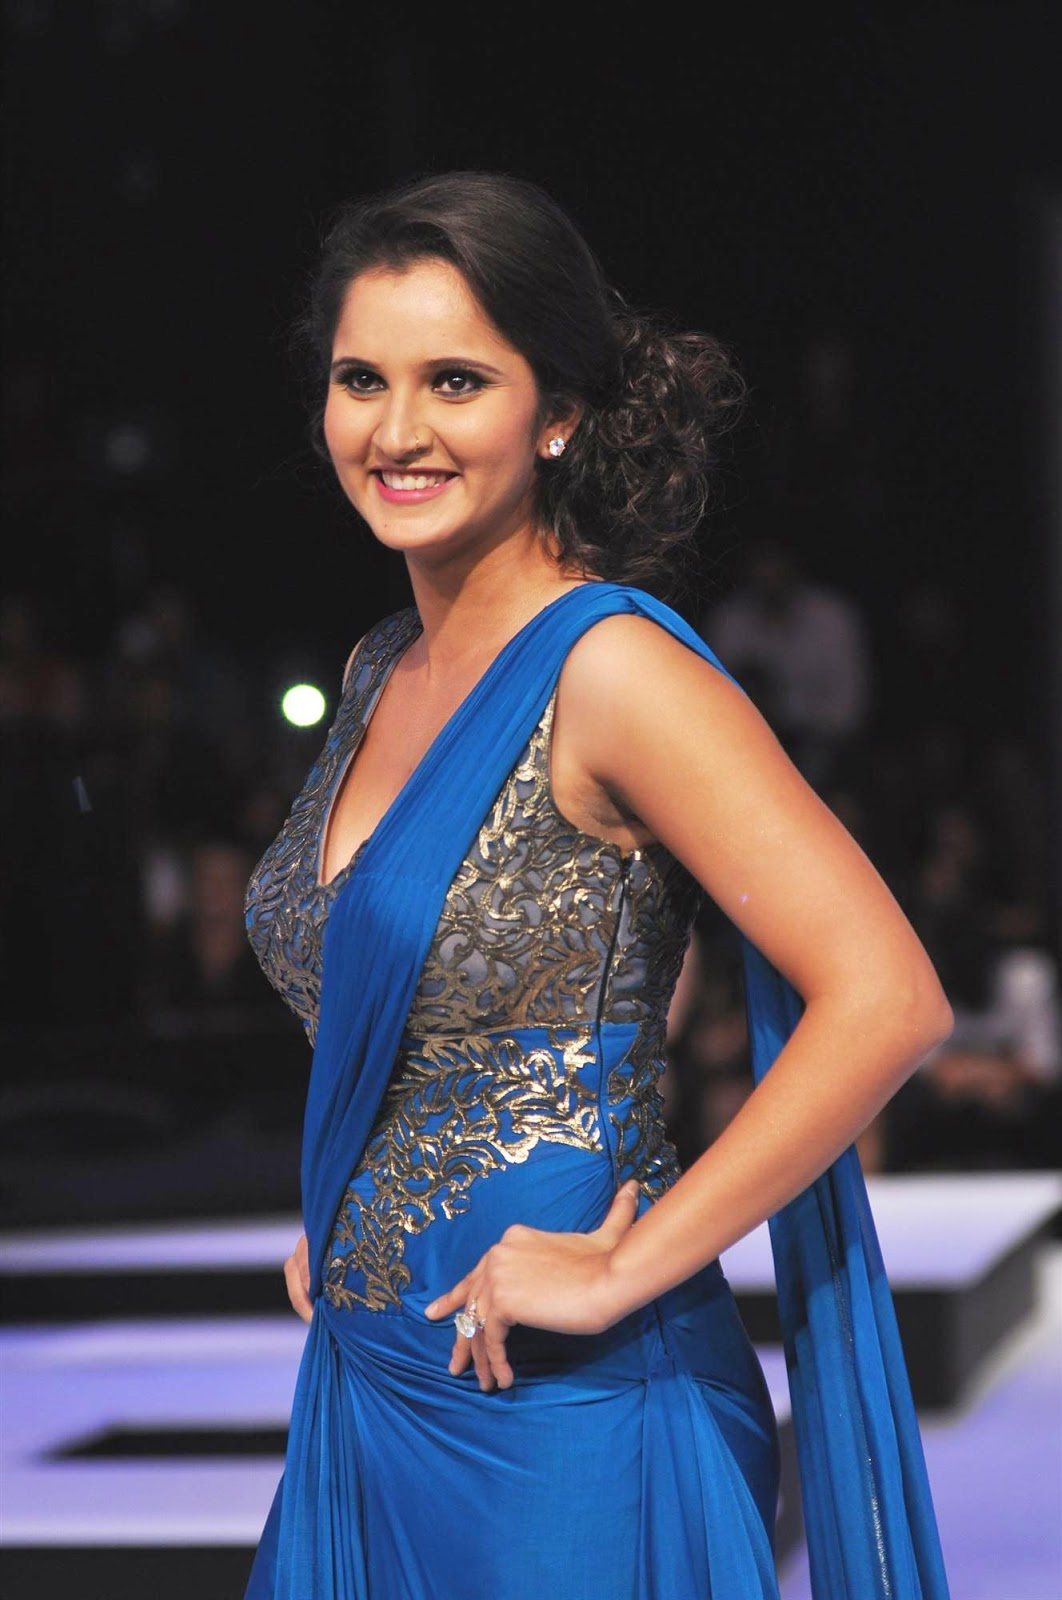 Sania Mirza Cute Wallpapers - Entertainment Only-9824